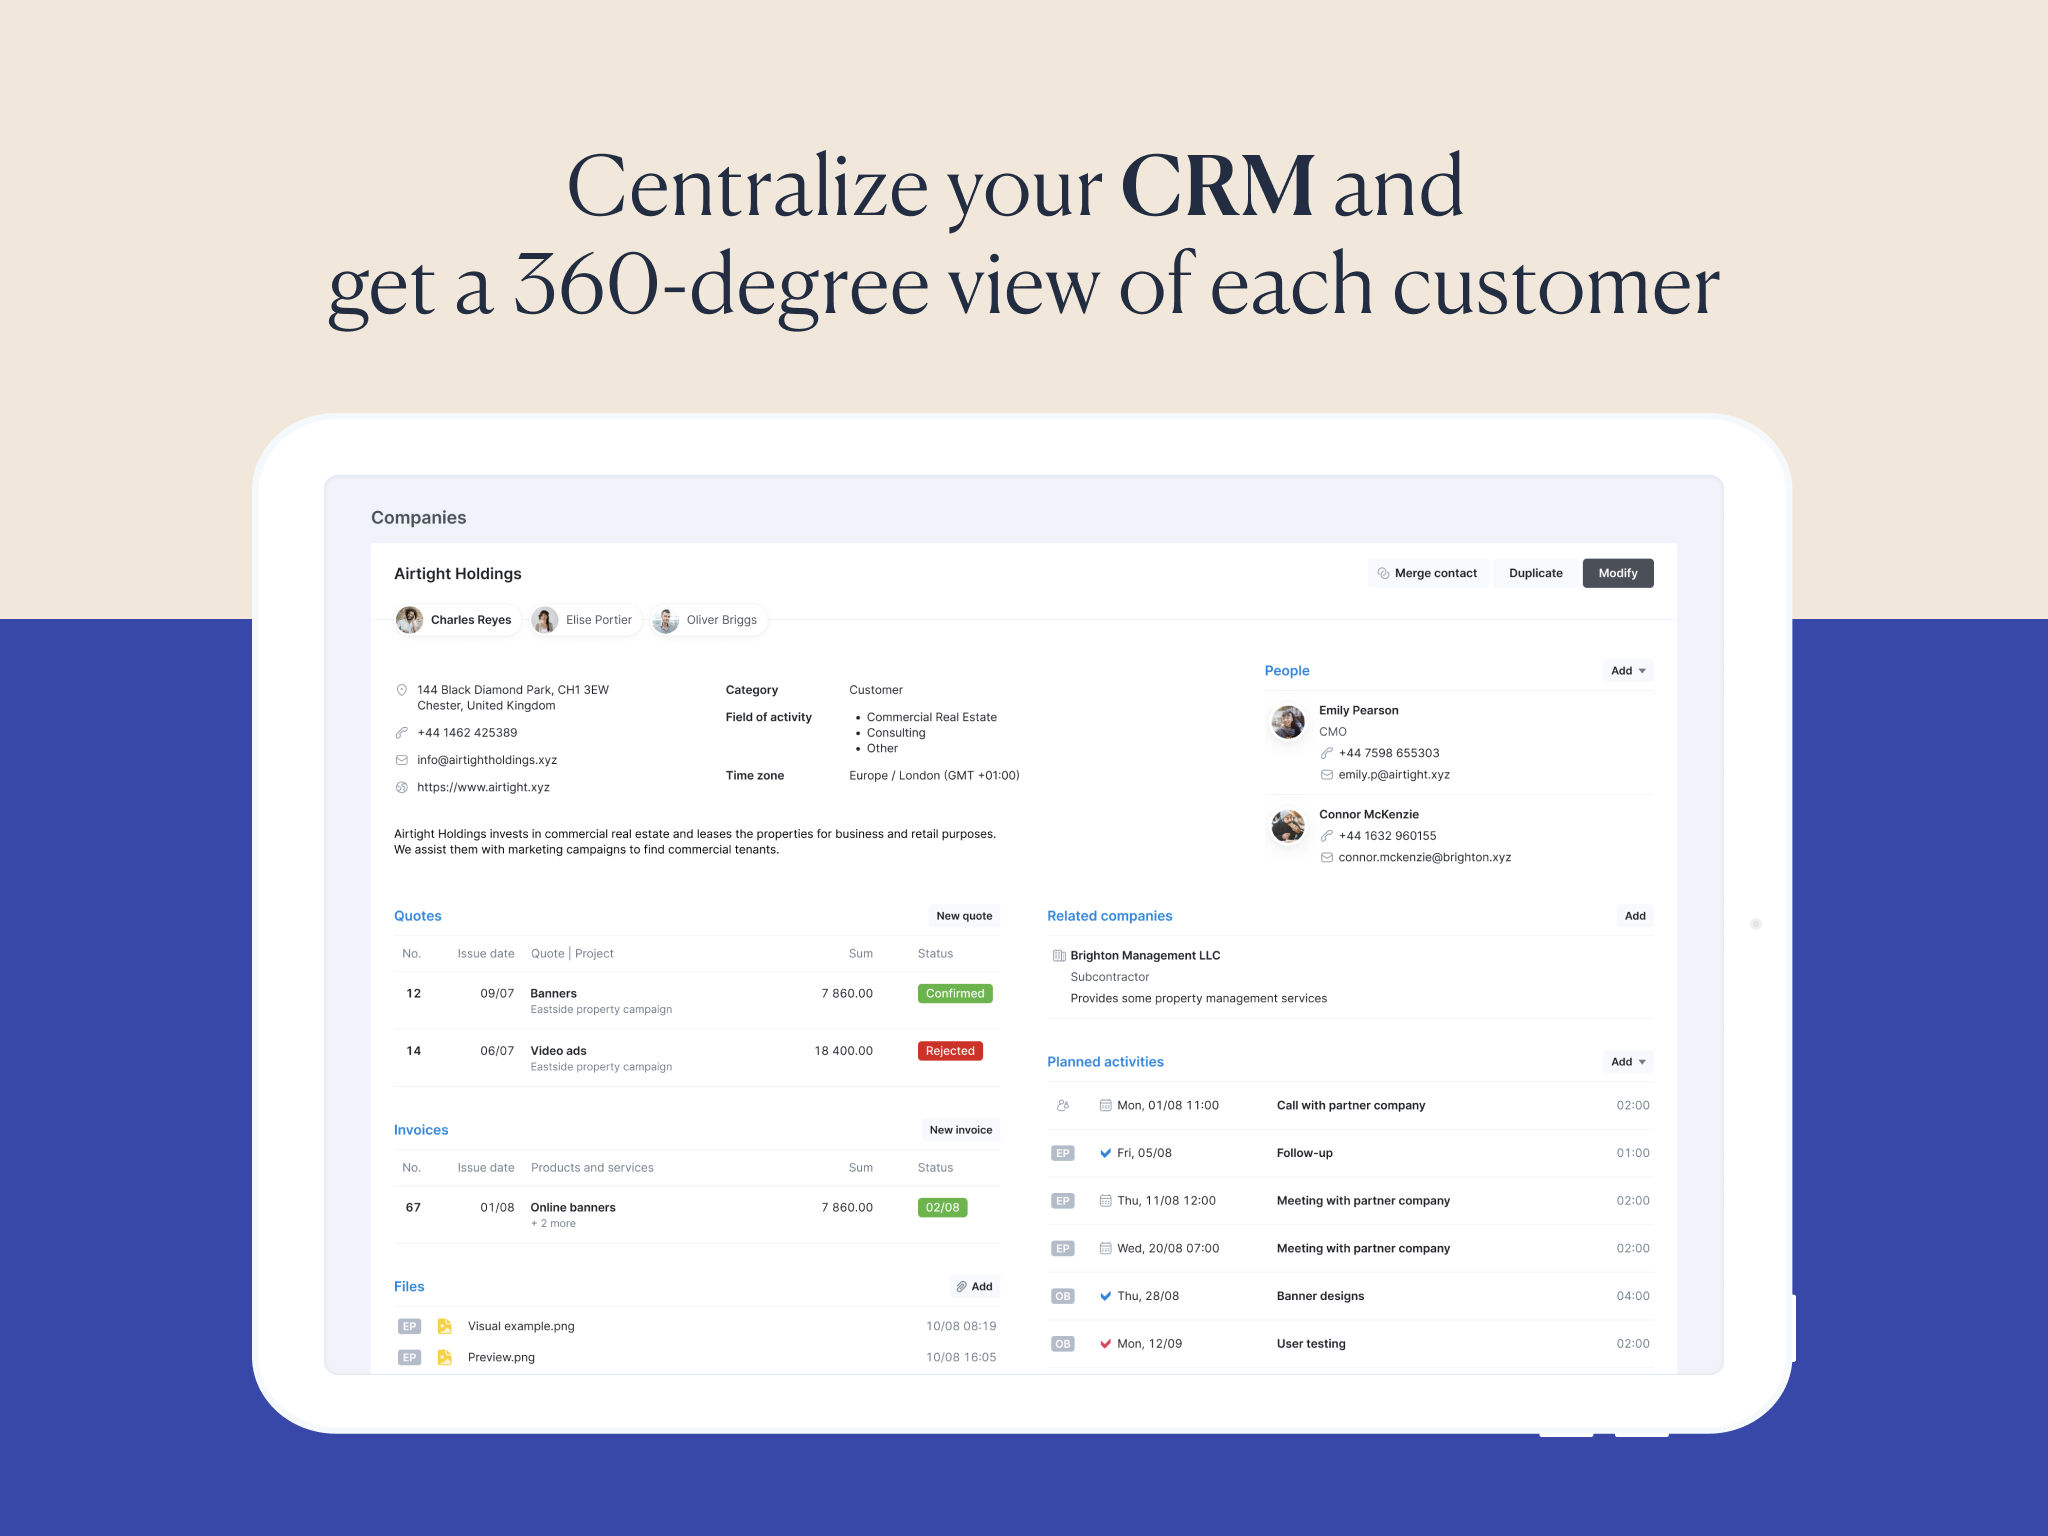 Centralized CRM